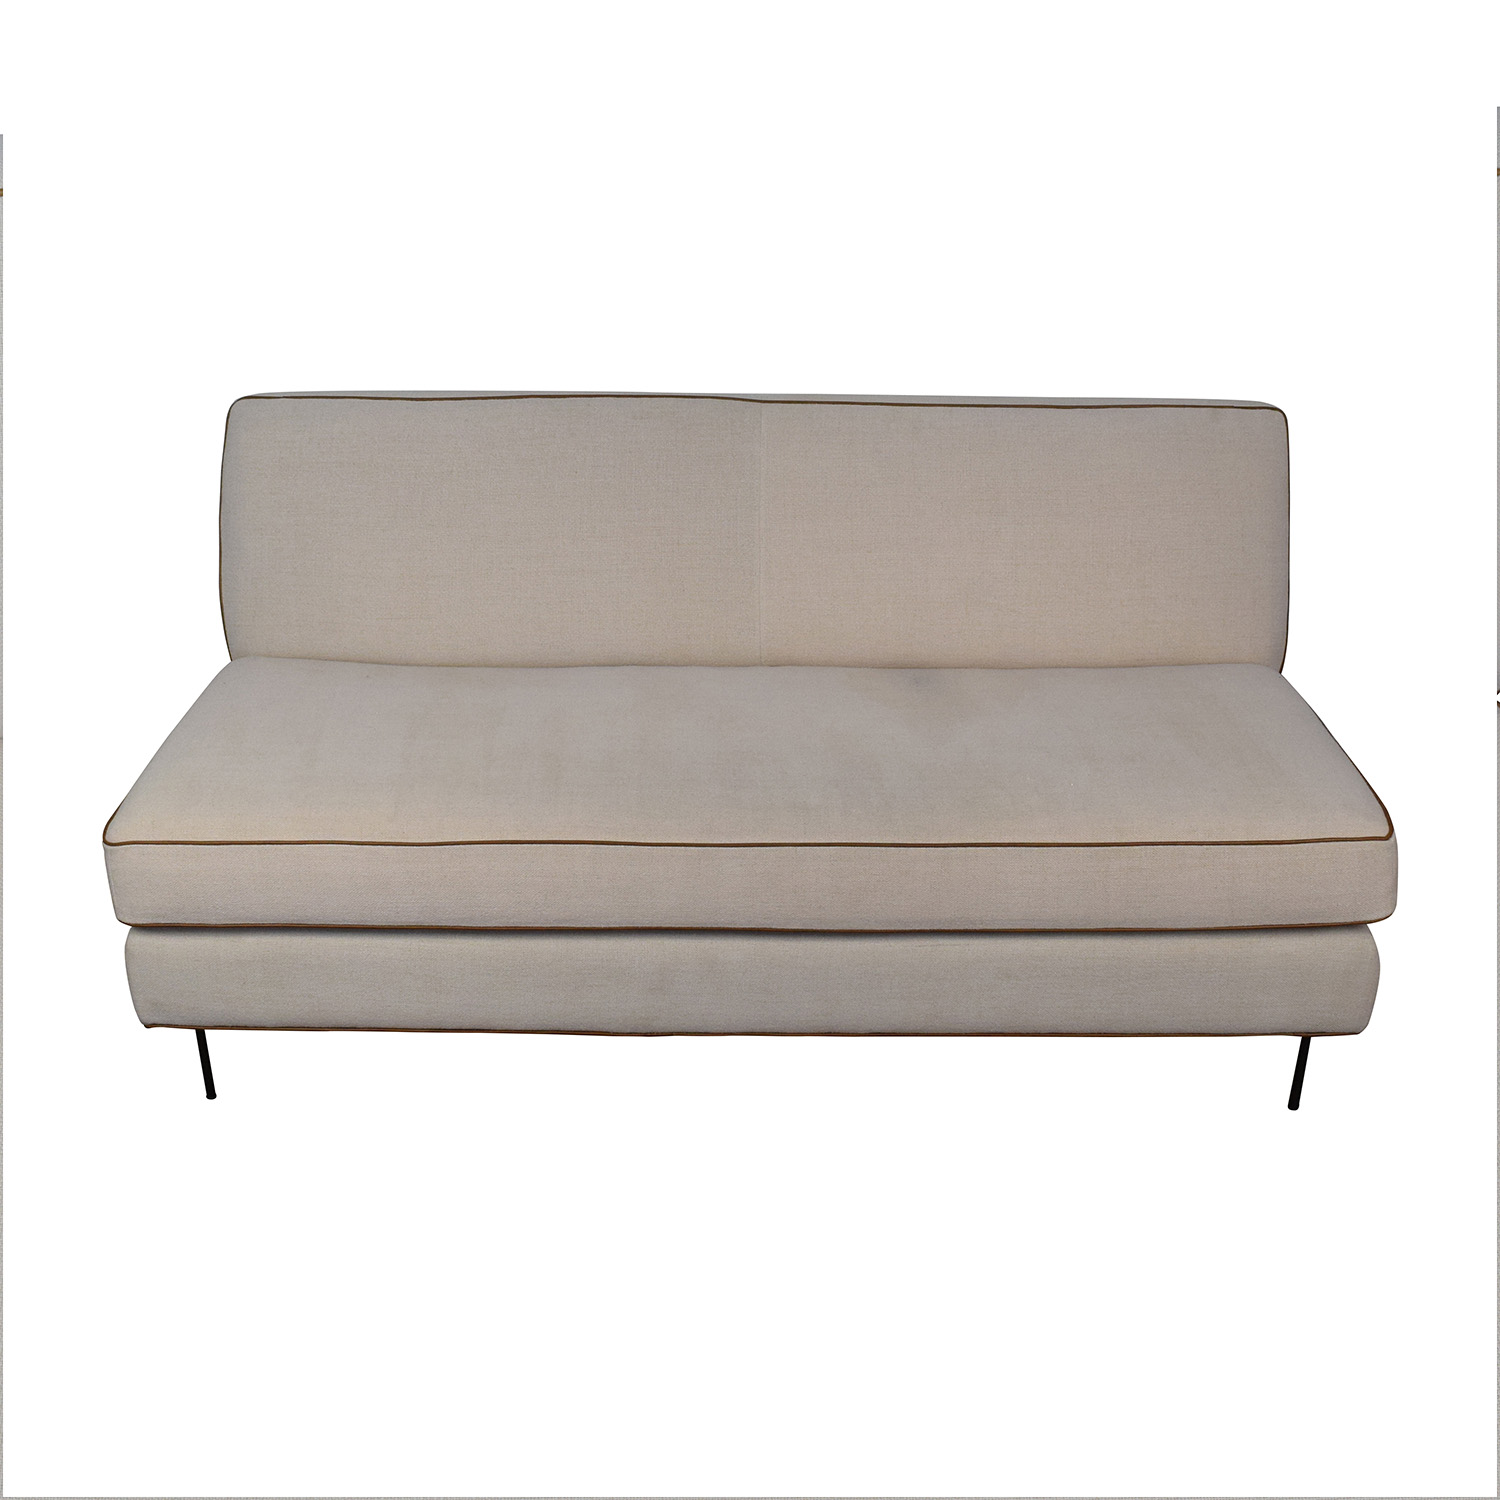 West Elm West Elm Commune Armless Sofa